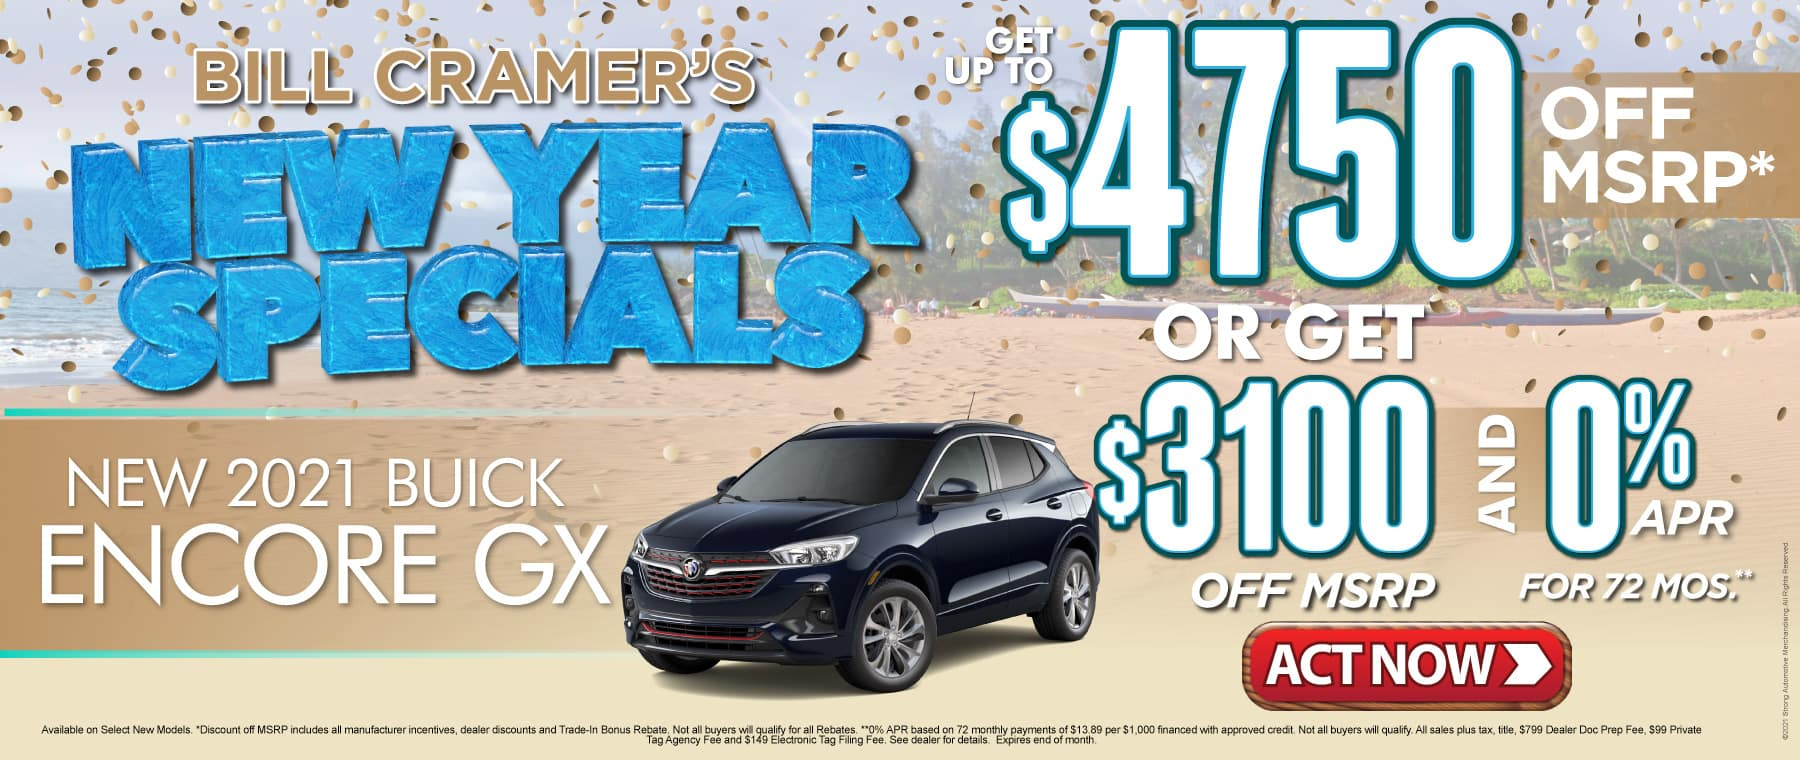 New 2021 Buick Encore GX - Get up to $4750 off msrp - Act Now